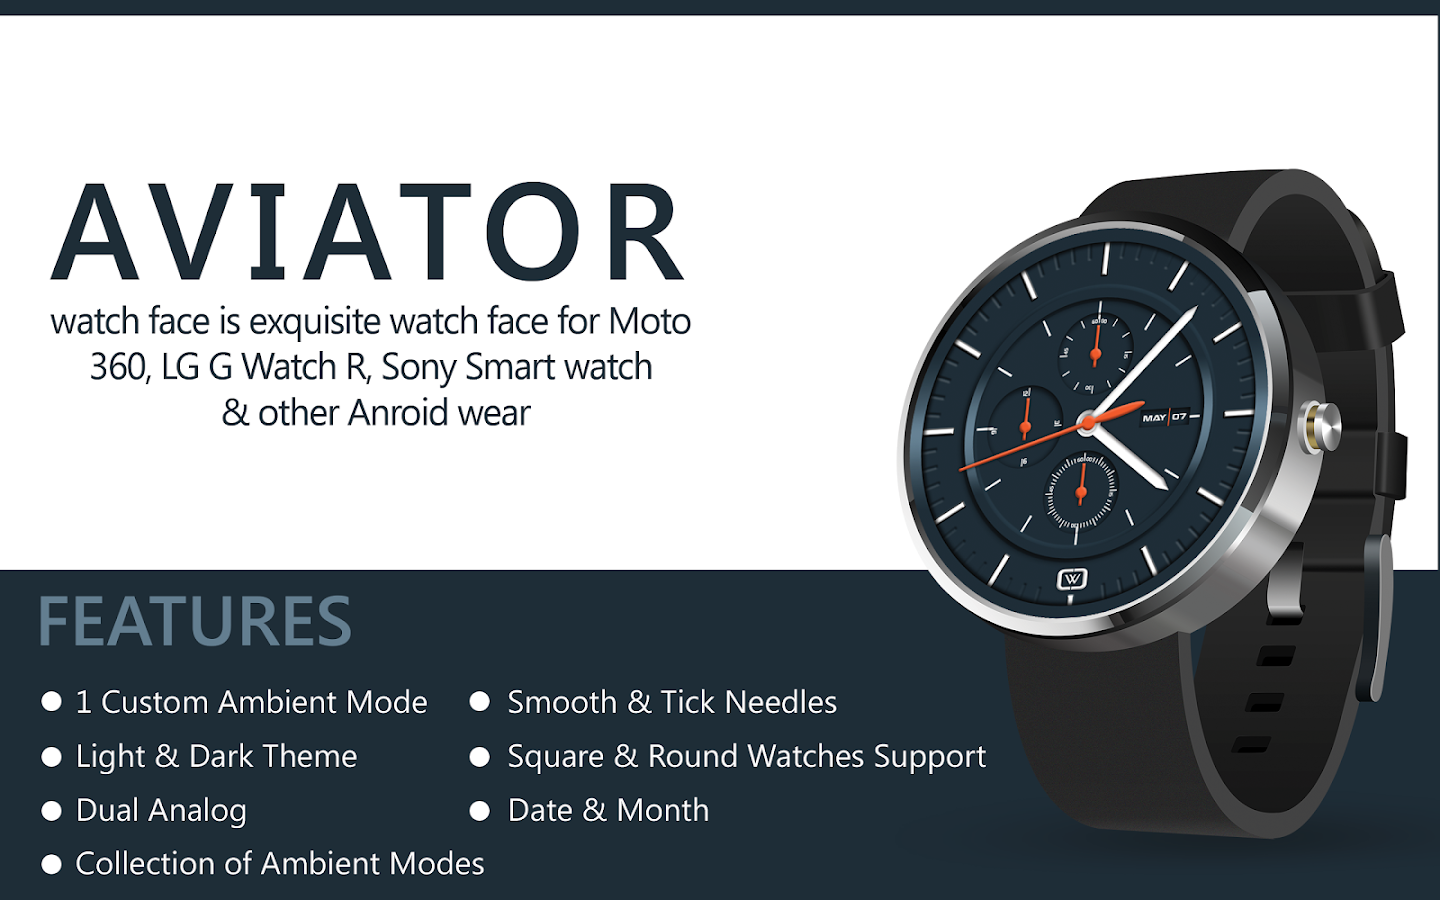 aviator hd watch face   android apps on google play